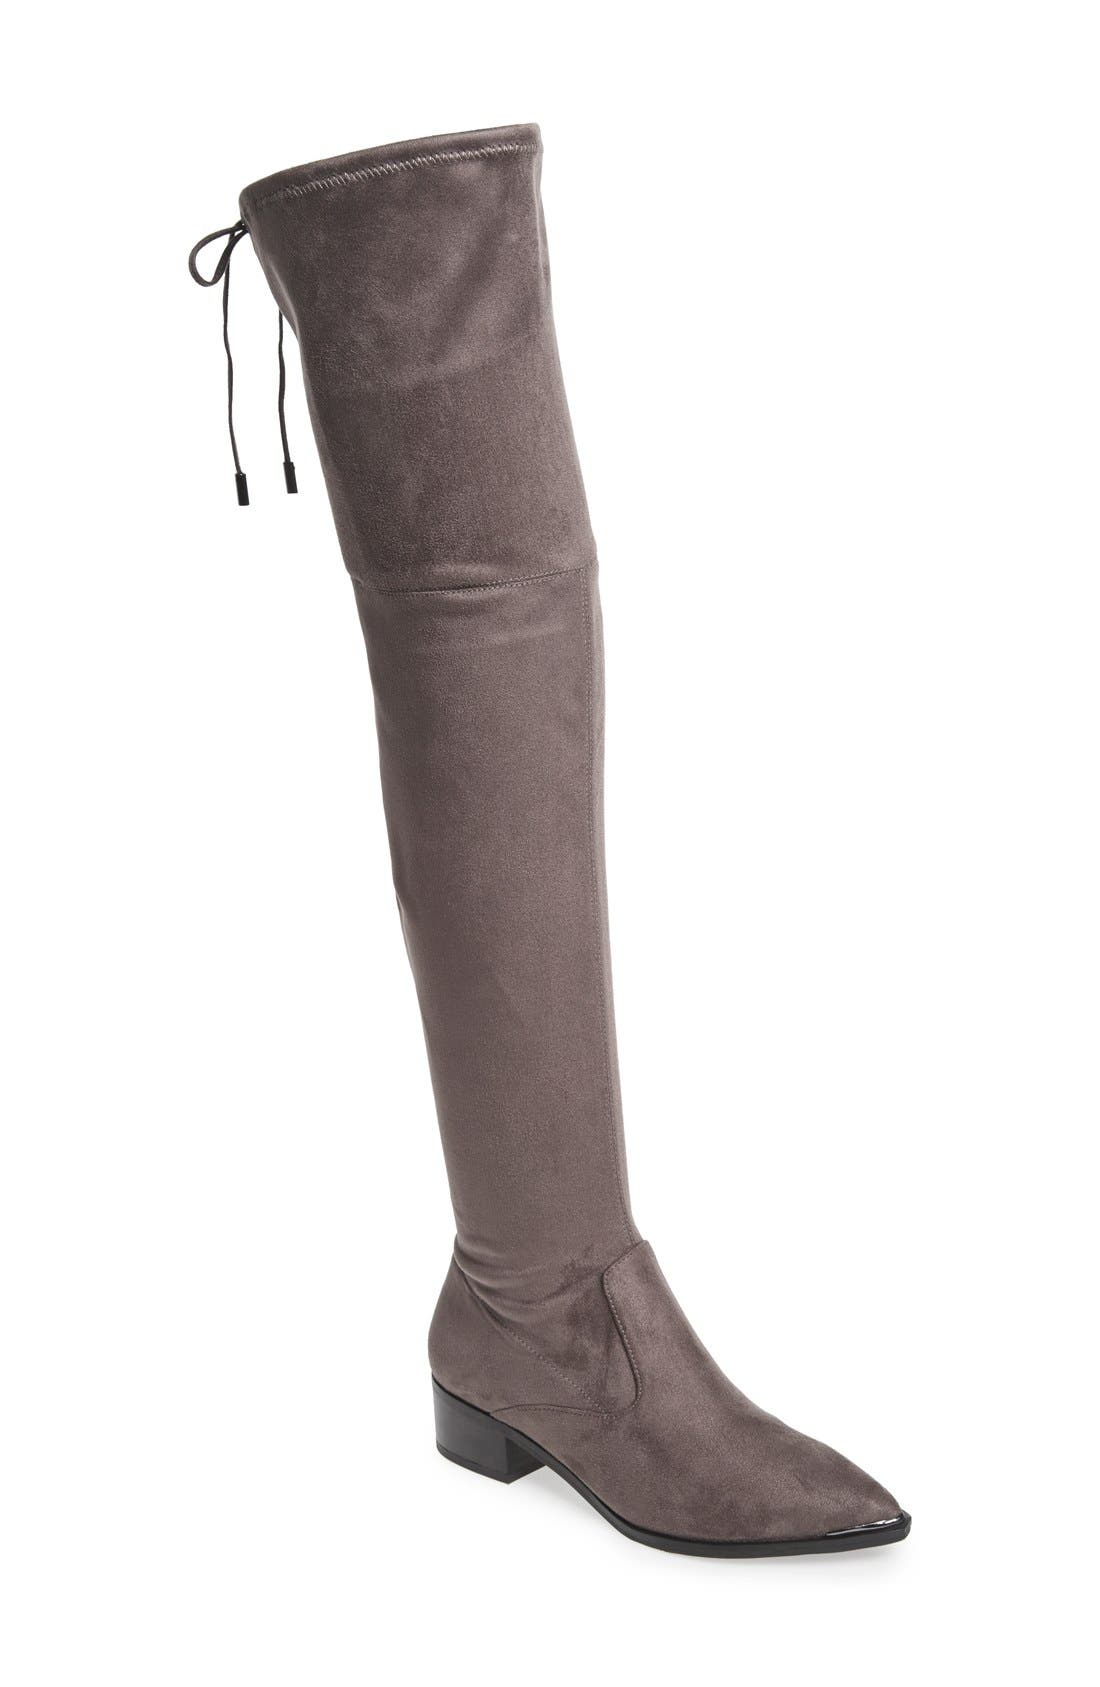 Yenna Over the Knee Boot,                             Main thumbnail 1, color,                             Grey Stretch Fabric